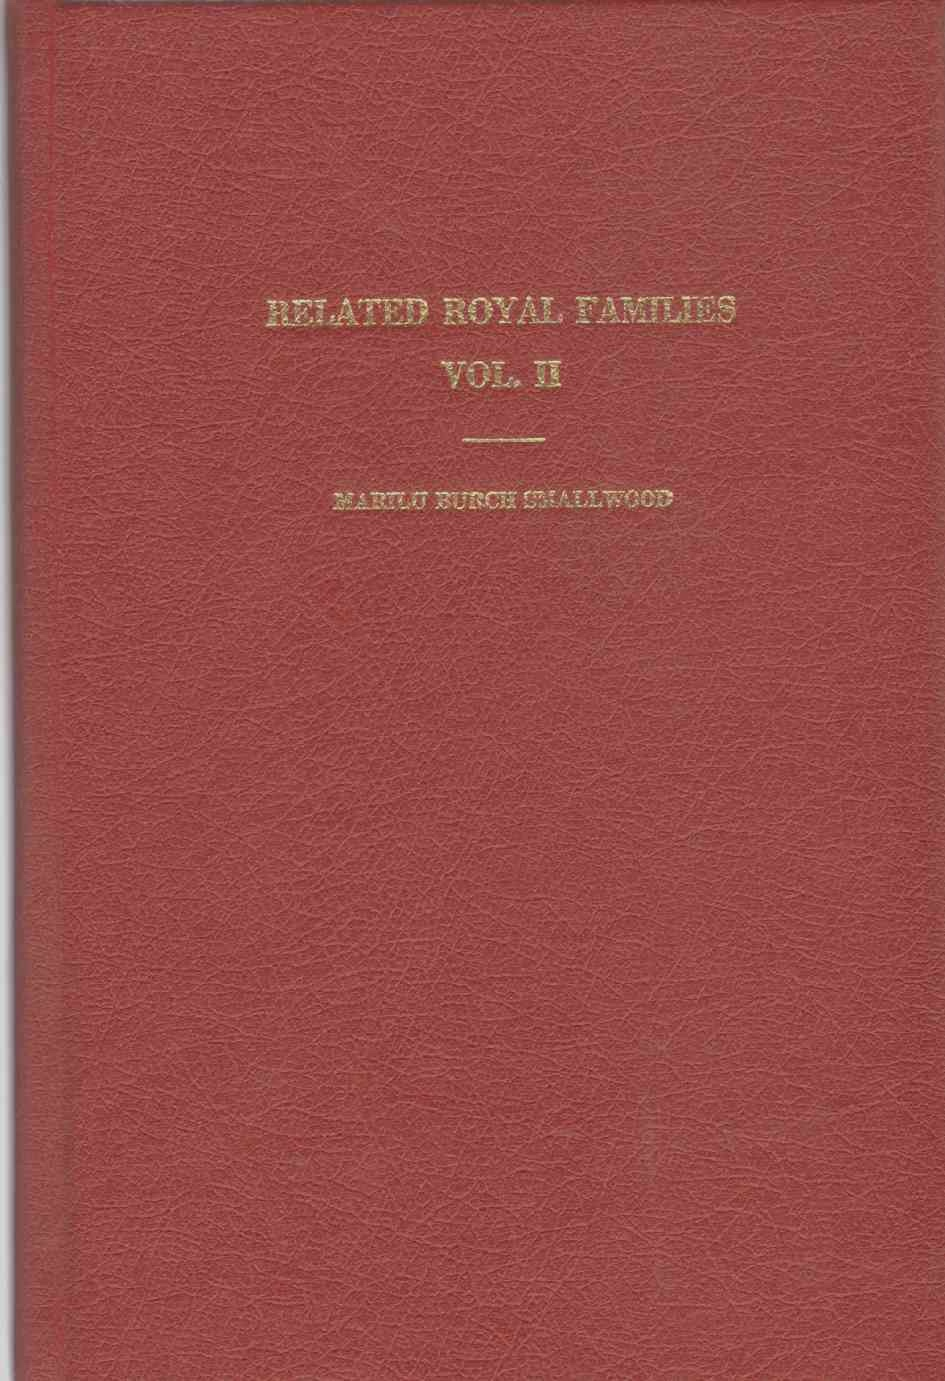 Image for RELATED ROYAL FAMILIES Volume II with an Addenda of People - Places - Things